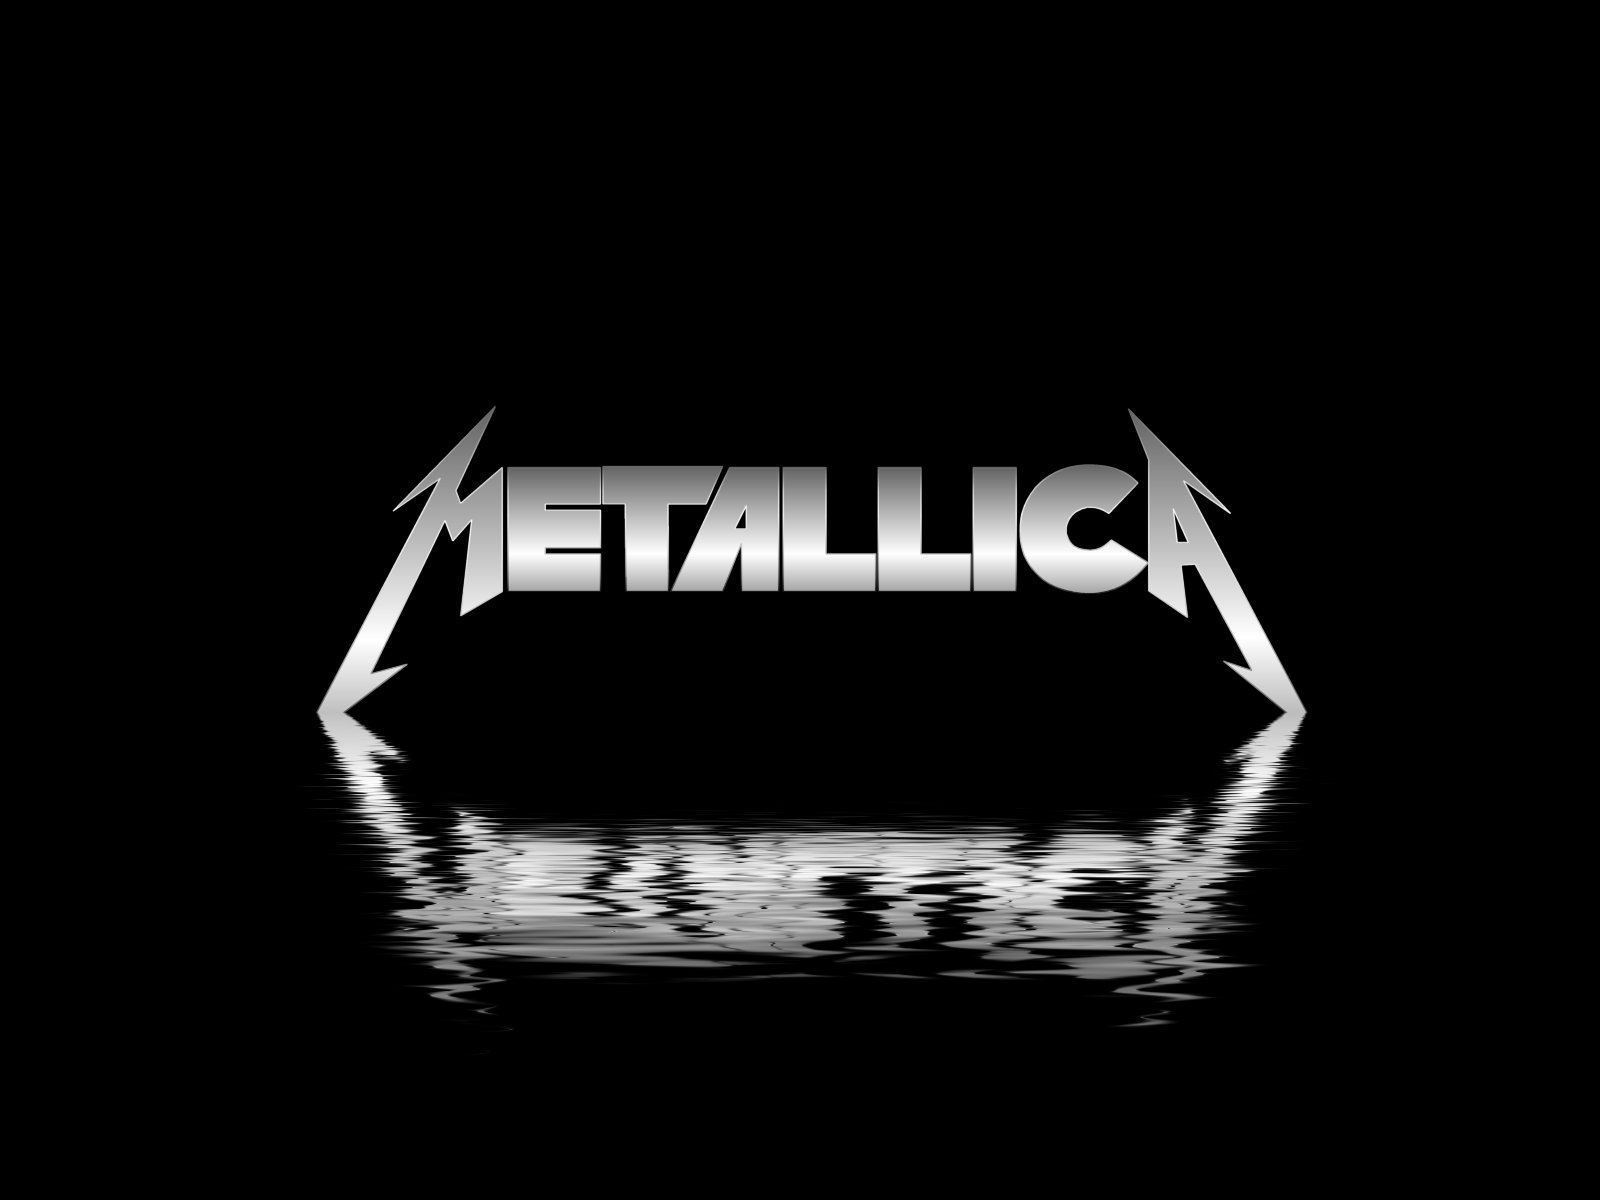 Metallica Wallpaper and Background Image   1600x1200   ID:68631 ...